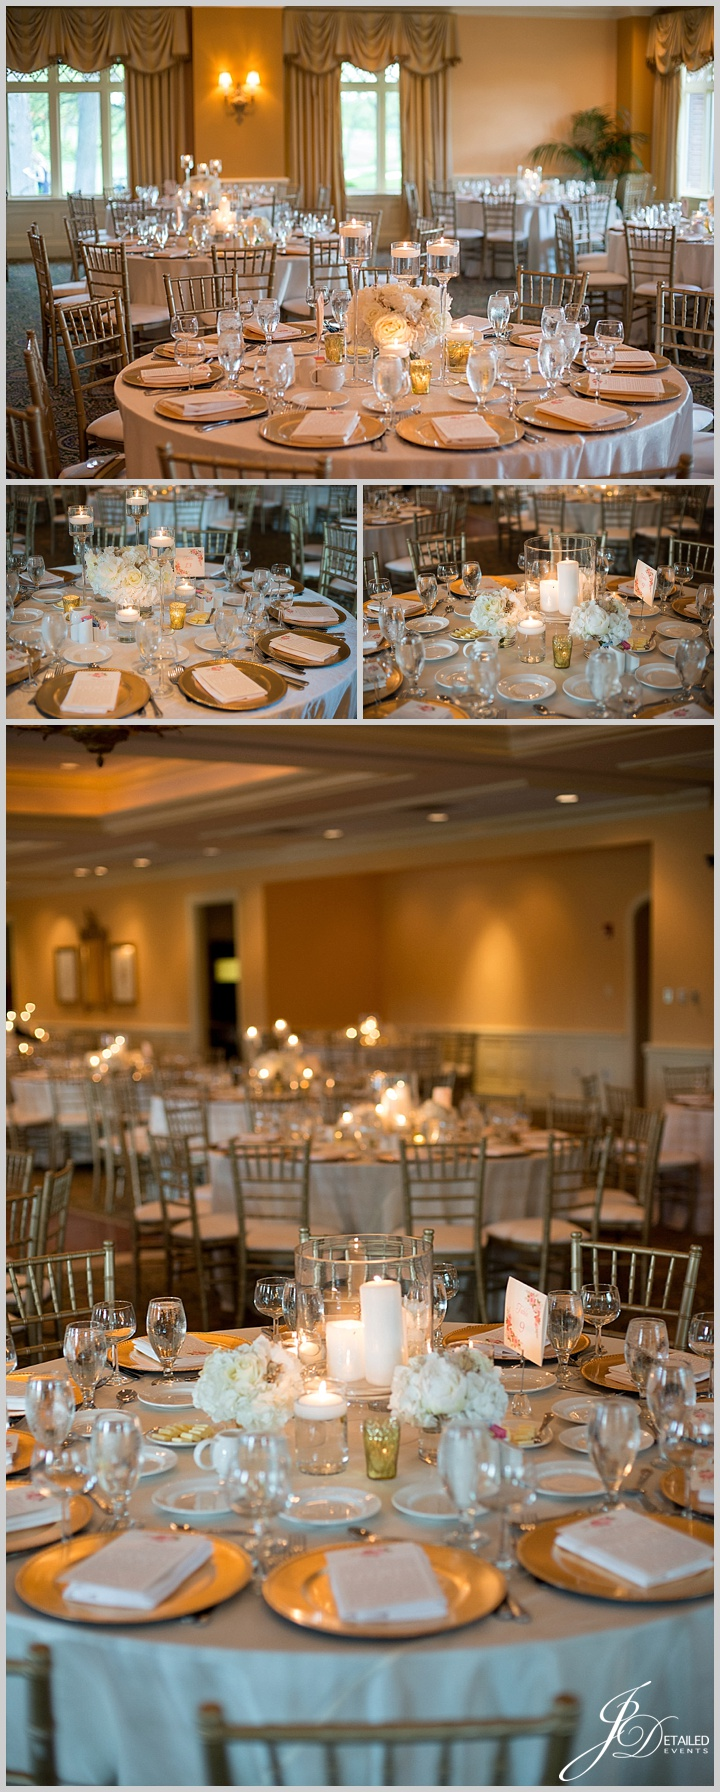 jdetailed-events-chicago-wedding-planner_0619